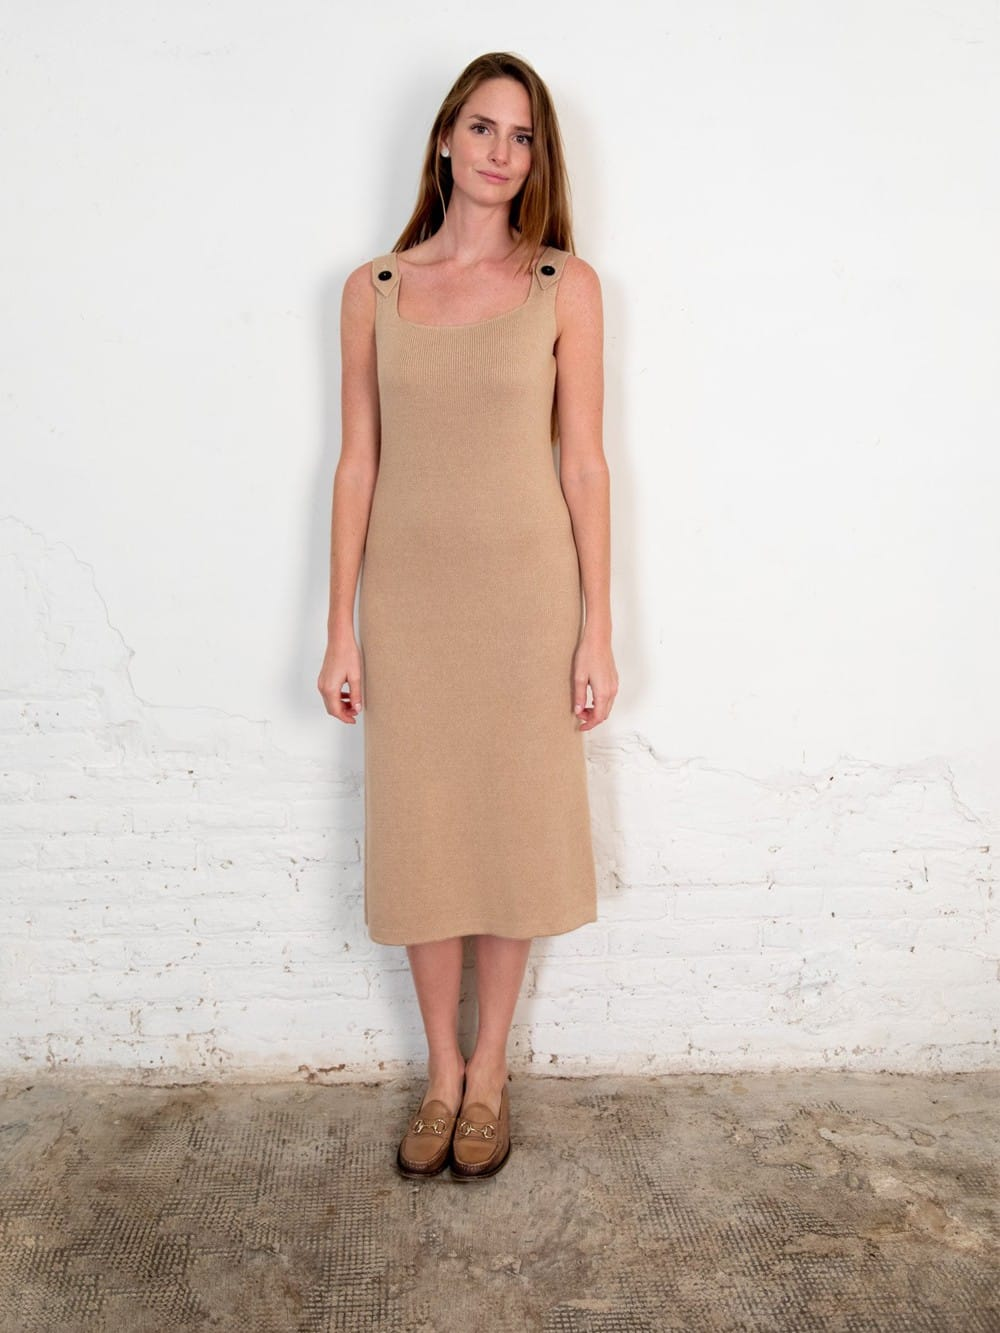 Organic cotton knit dress-Pevic